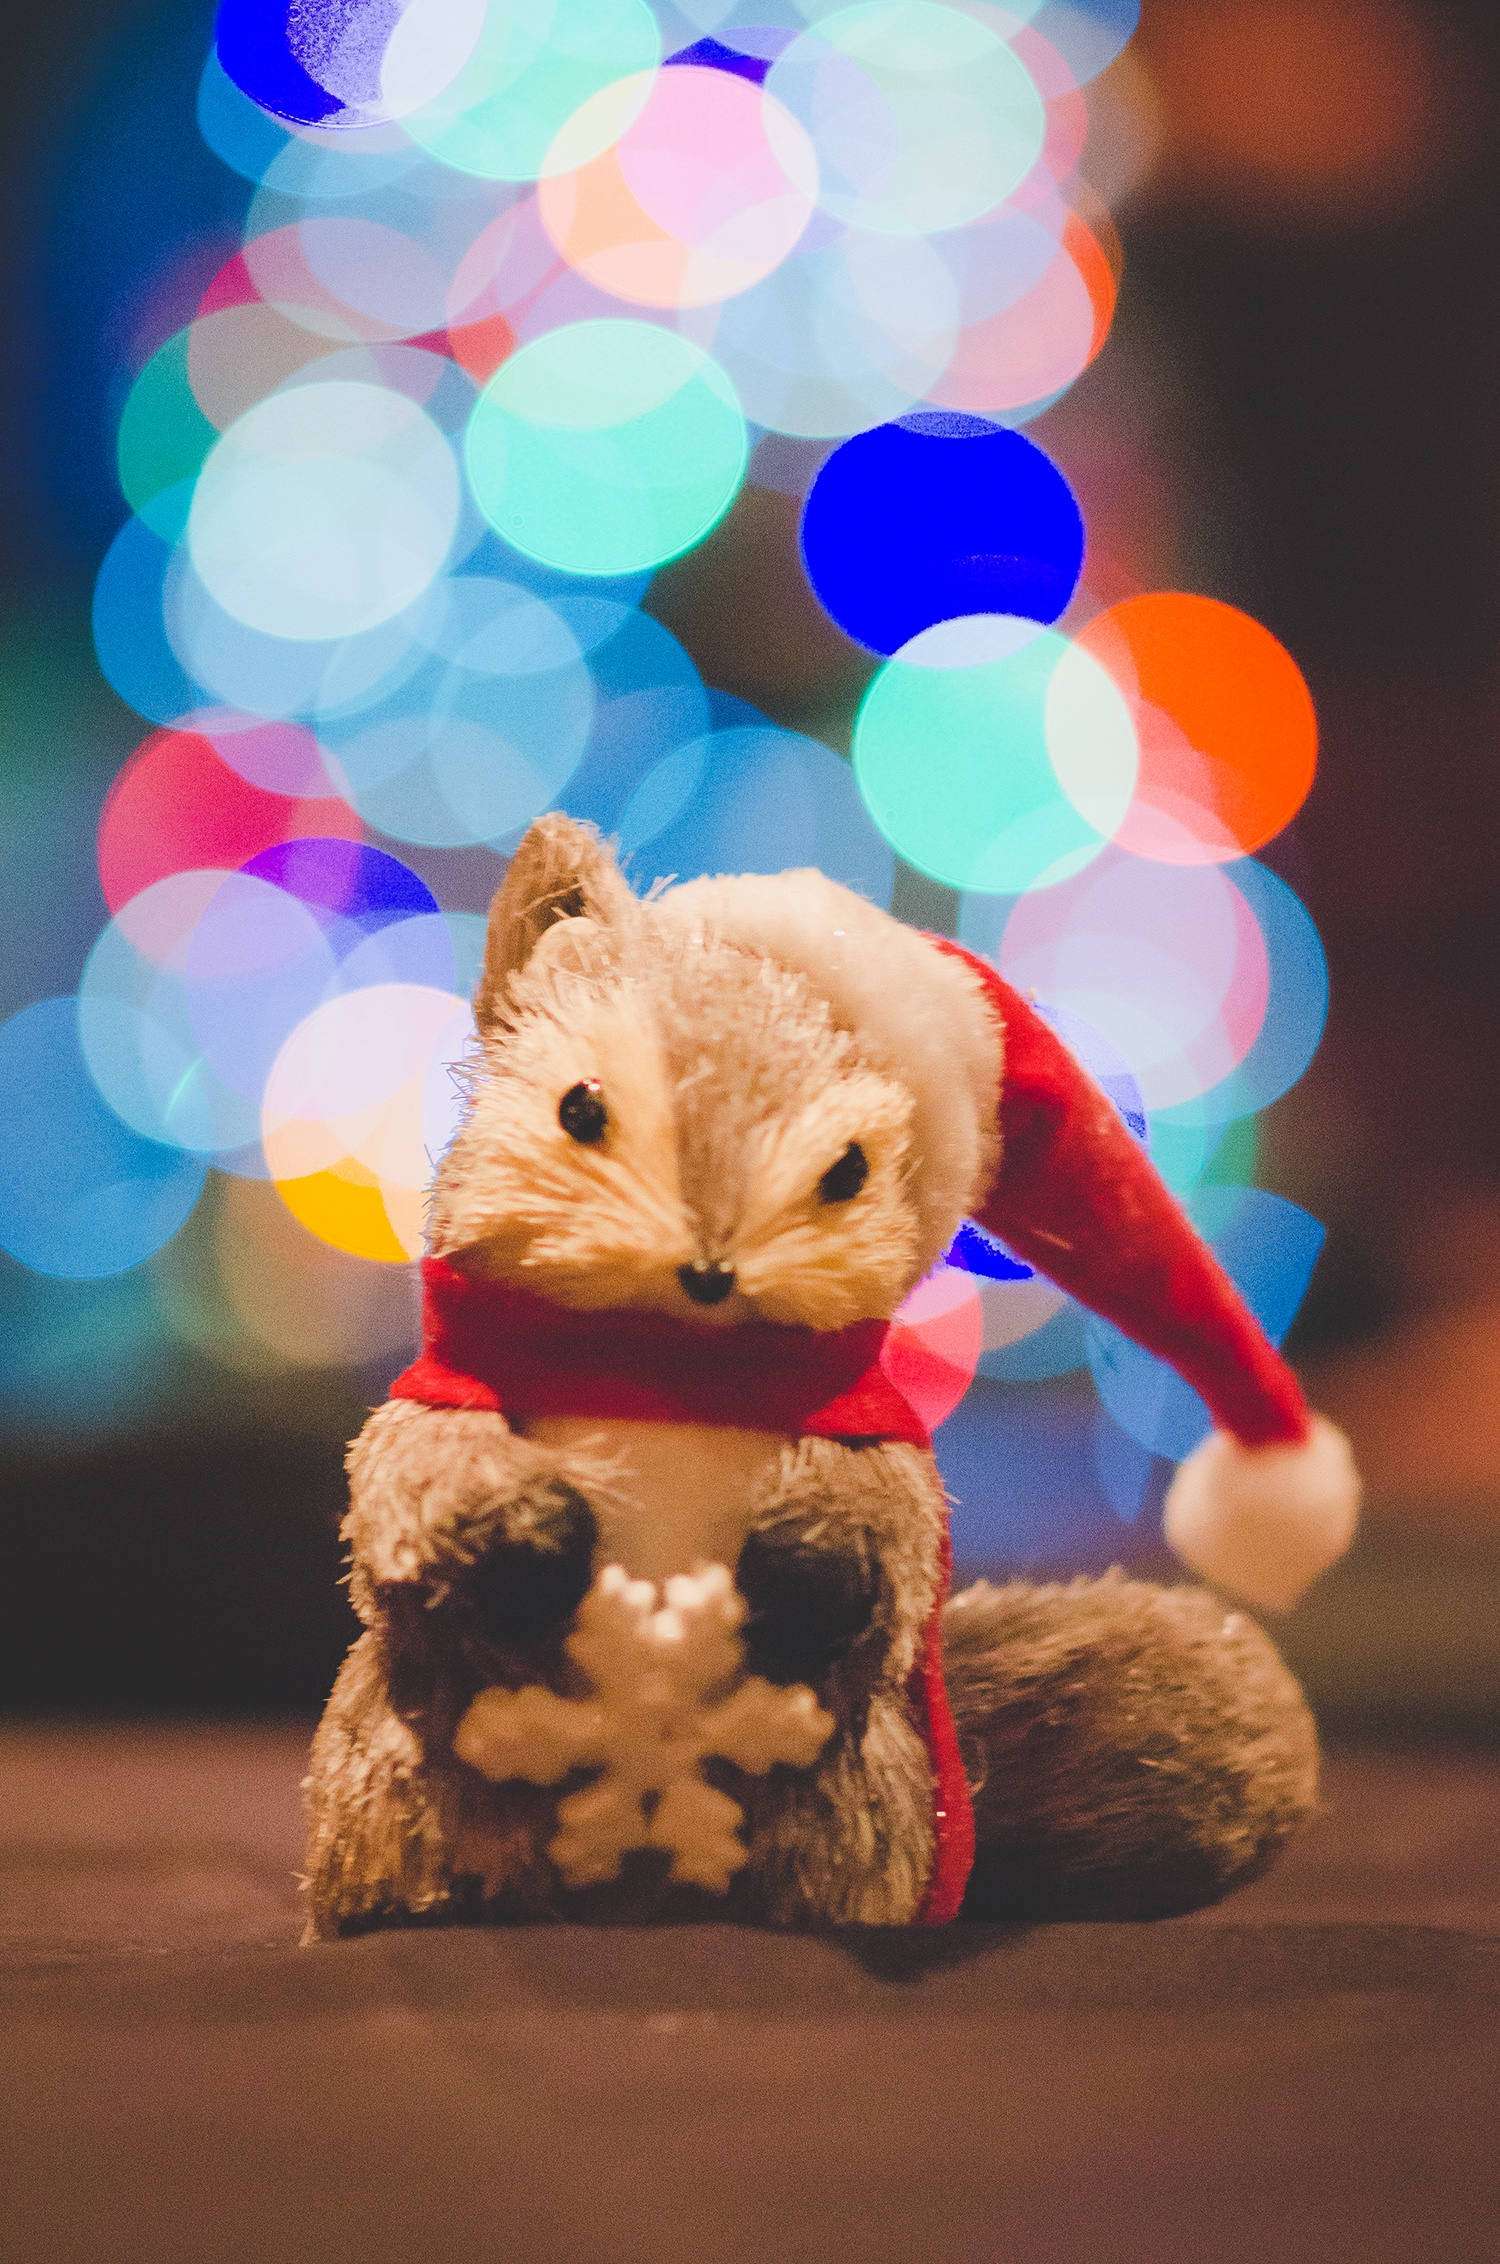 Squirrels Holiday 2016